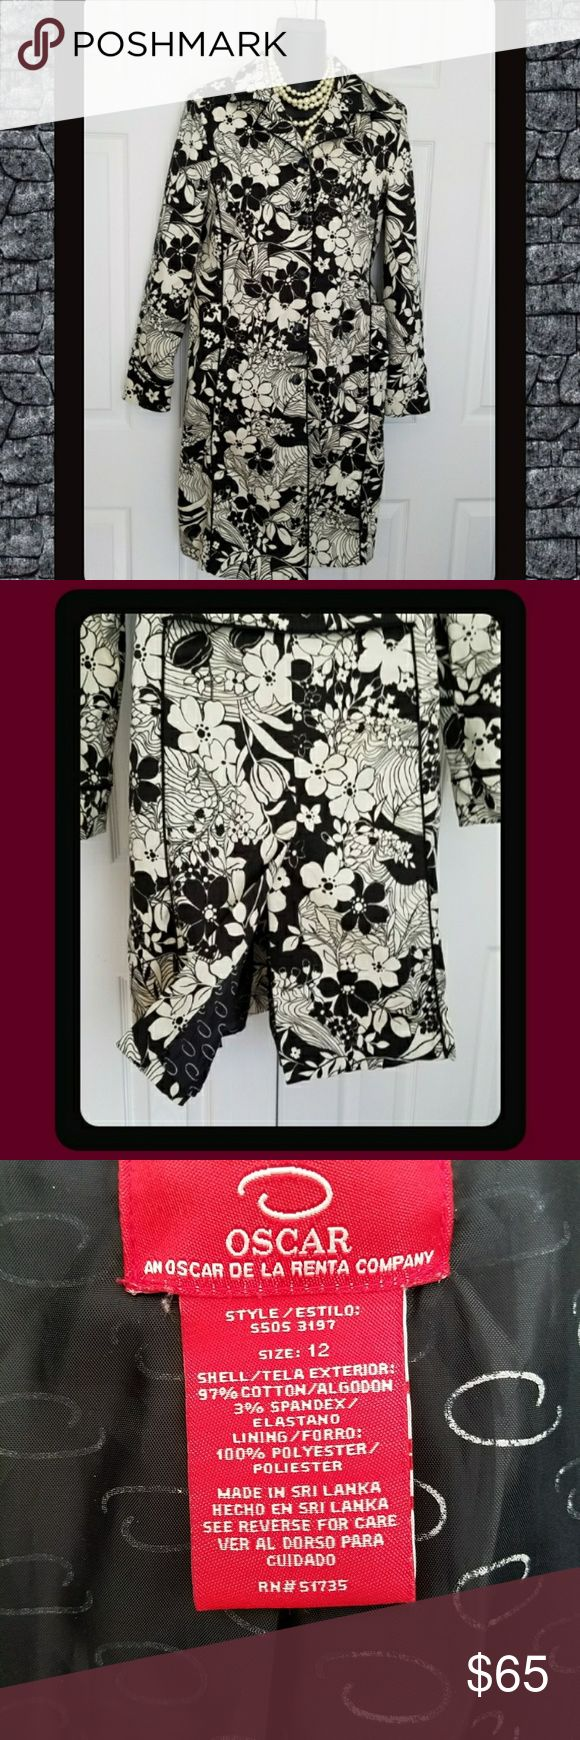 """VINTAGE OSCAR DE LA RENTA VINTAGE  OSCAR DEL LA RENTA  GENUINE 70'S BLACK AND OFF WHITE FLORAL PRINT LONG LENGTHJACKET   Features beautiful black piping detail along the seams, pockets and arms  Full button front, back belted feature and pleat. Beautiful detailed cuffs. Padded Shoulders Fully lined with signature OSCAR logo Lovingly worn for many years  Lining has some sign of wear  No holes or rips Length 37 Bust Span 20"""" Size 12   Shell 97% polyester 3%  Lining100% polyester DRY CLEAN ONLY…"""